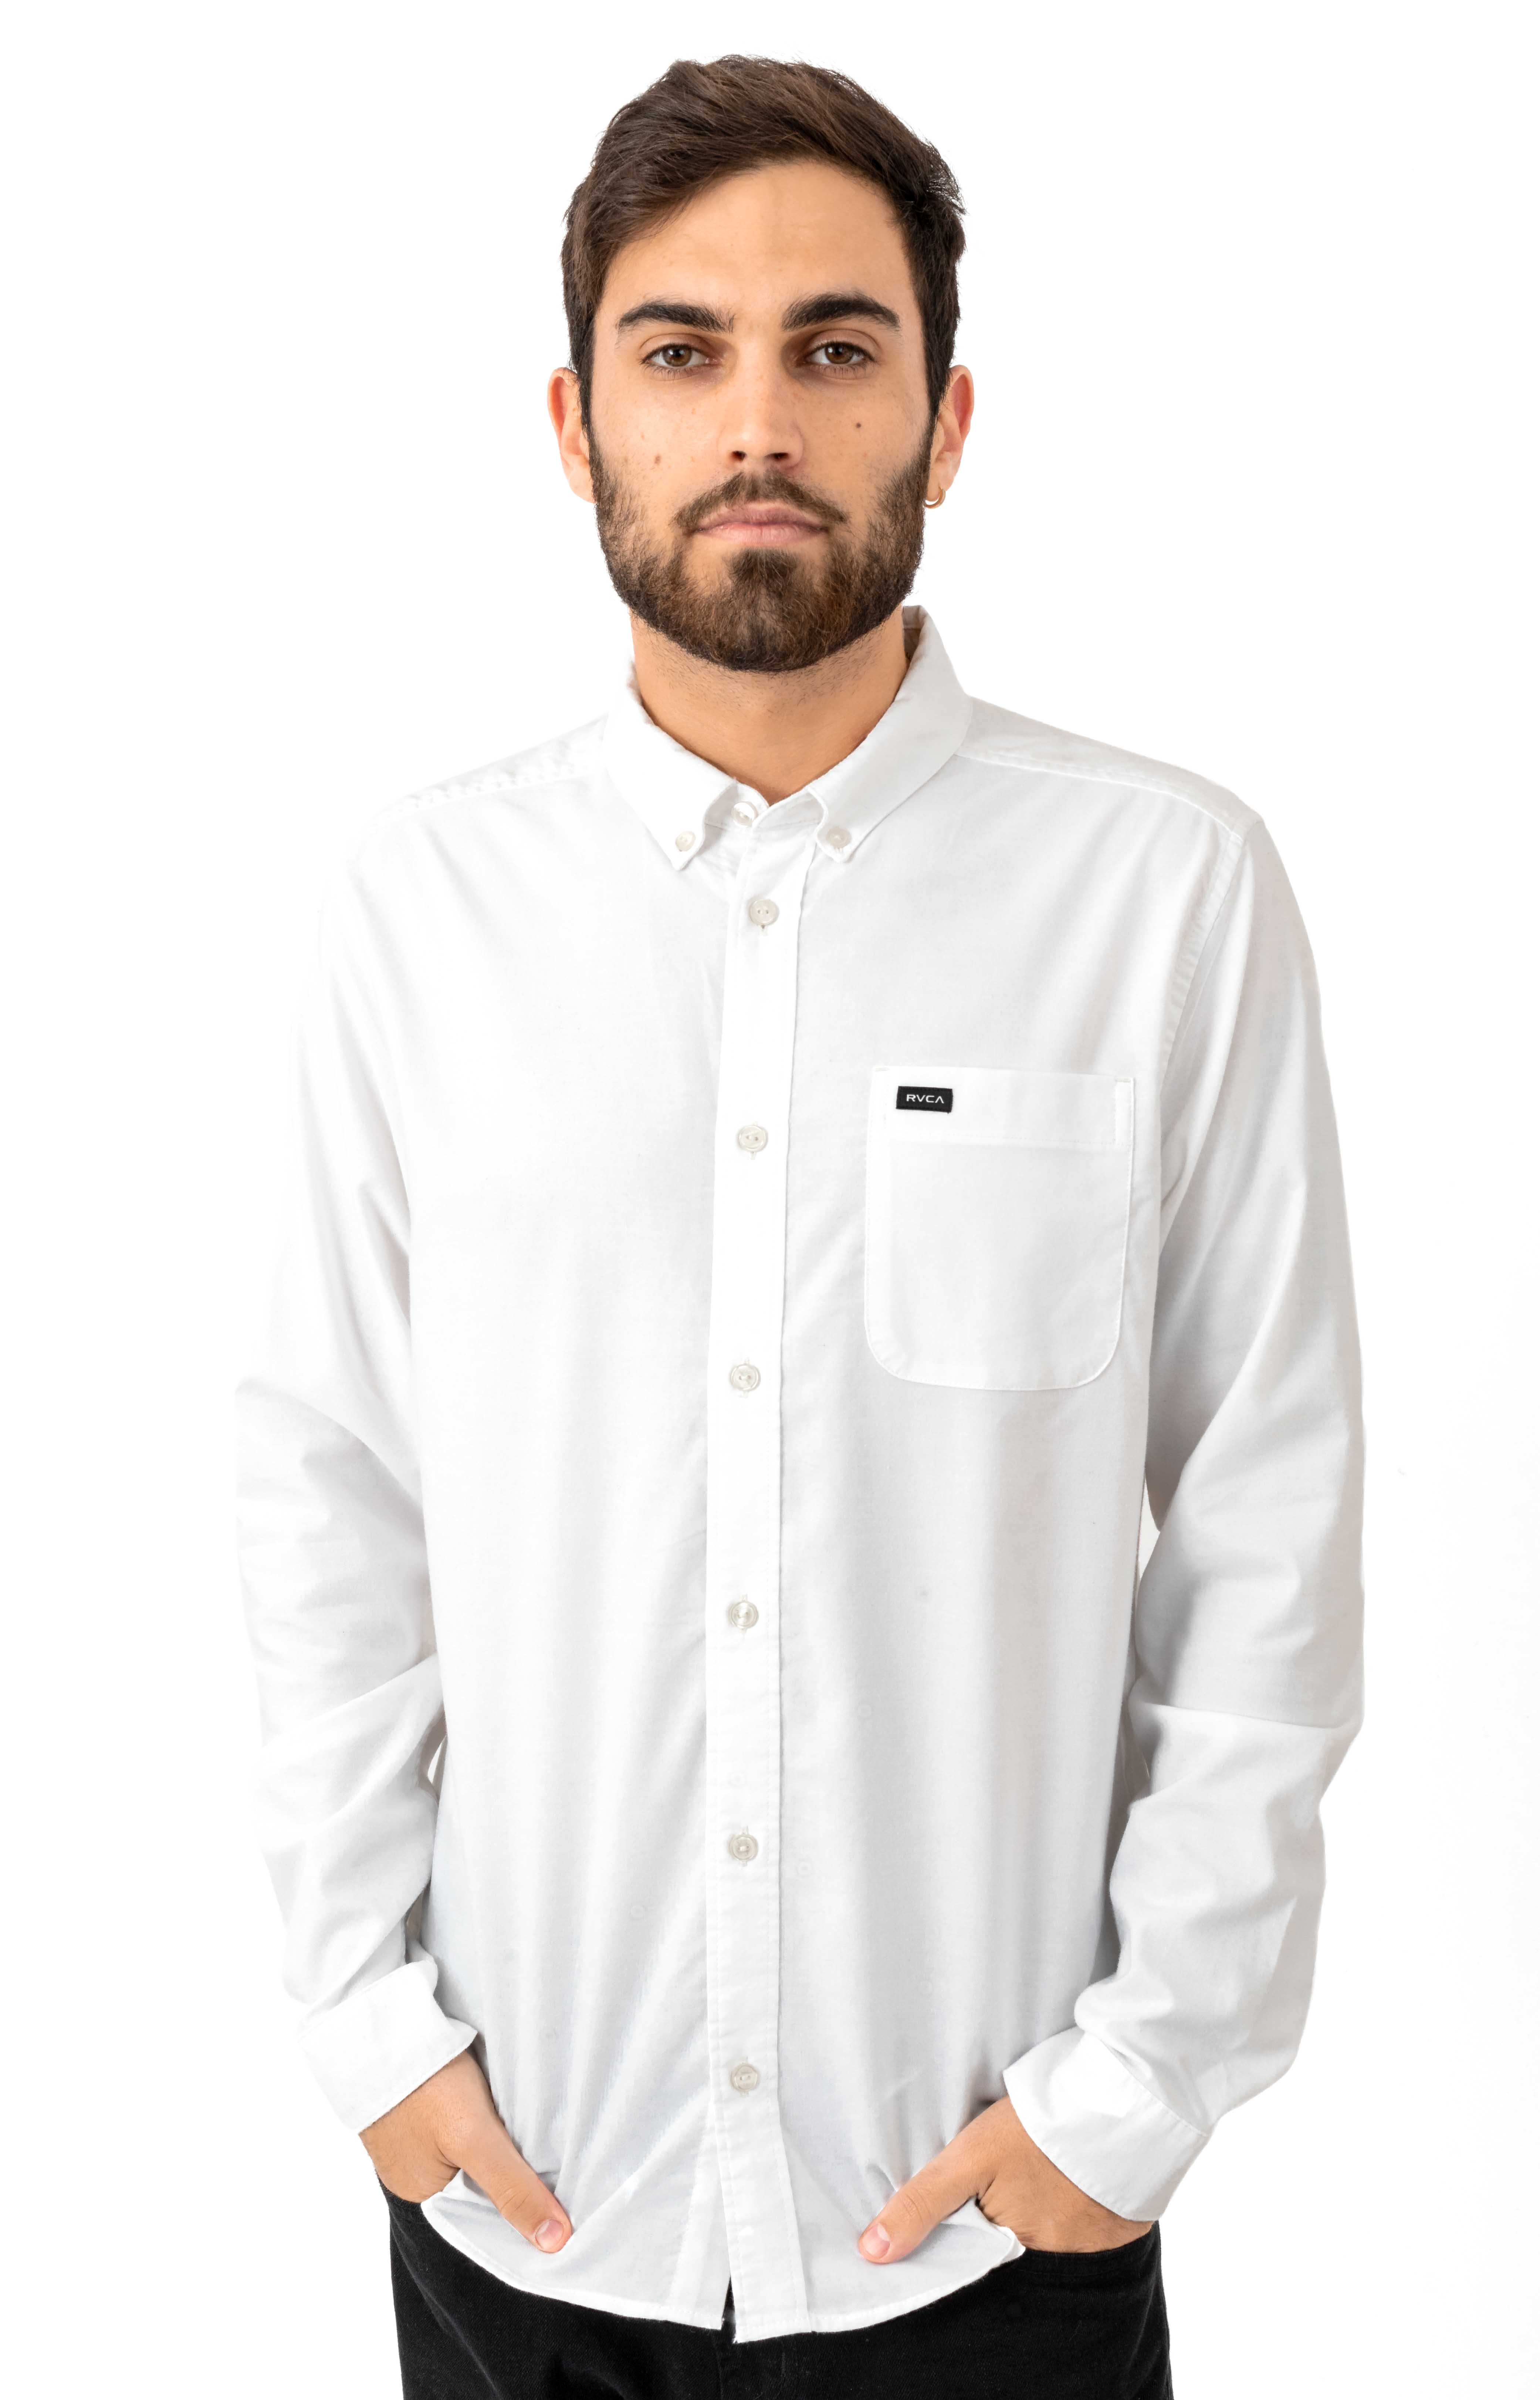 That'll Do Stretch Button-Up Shirt - White